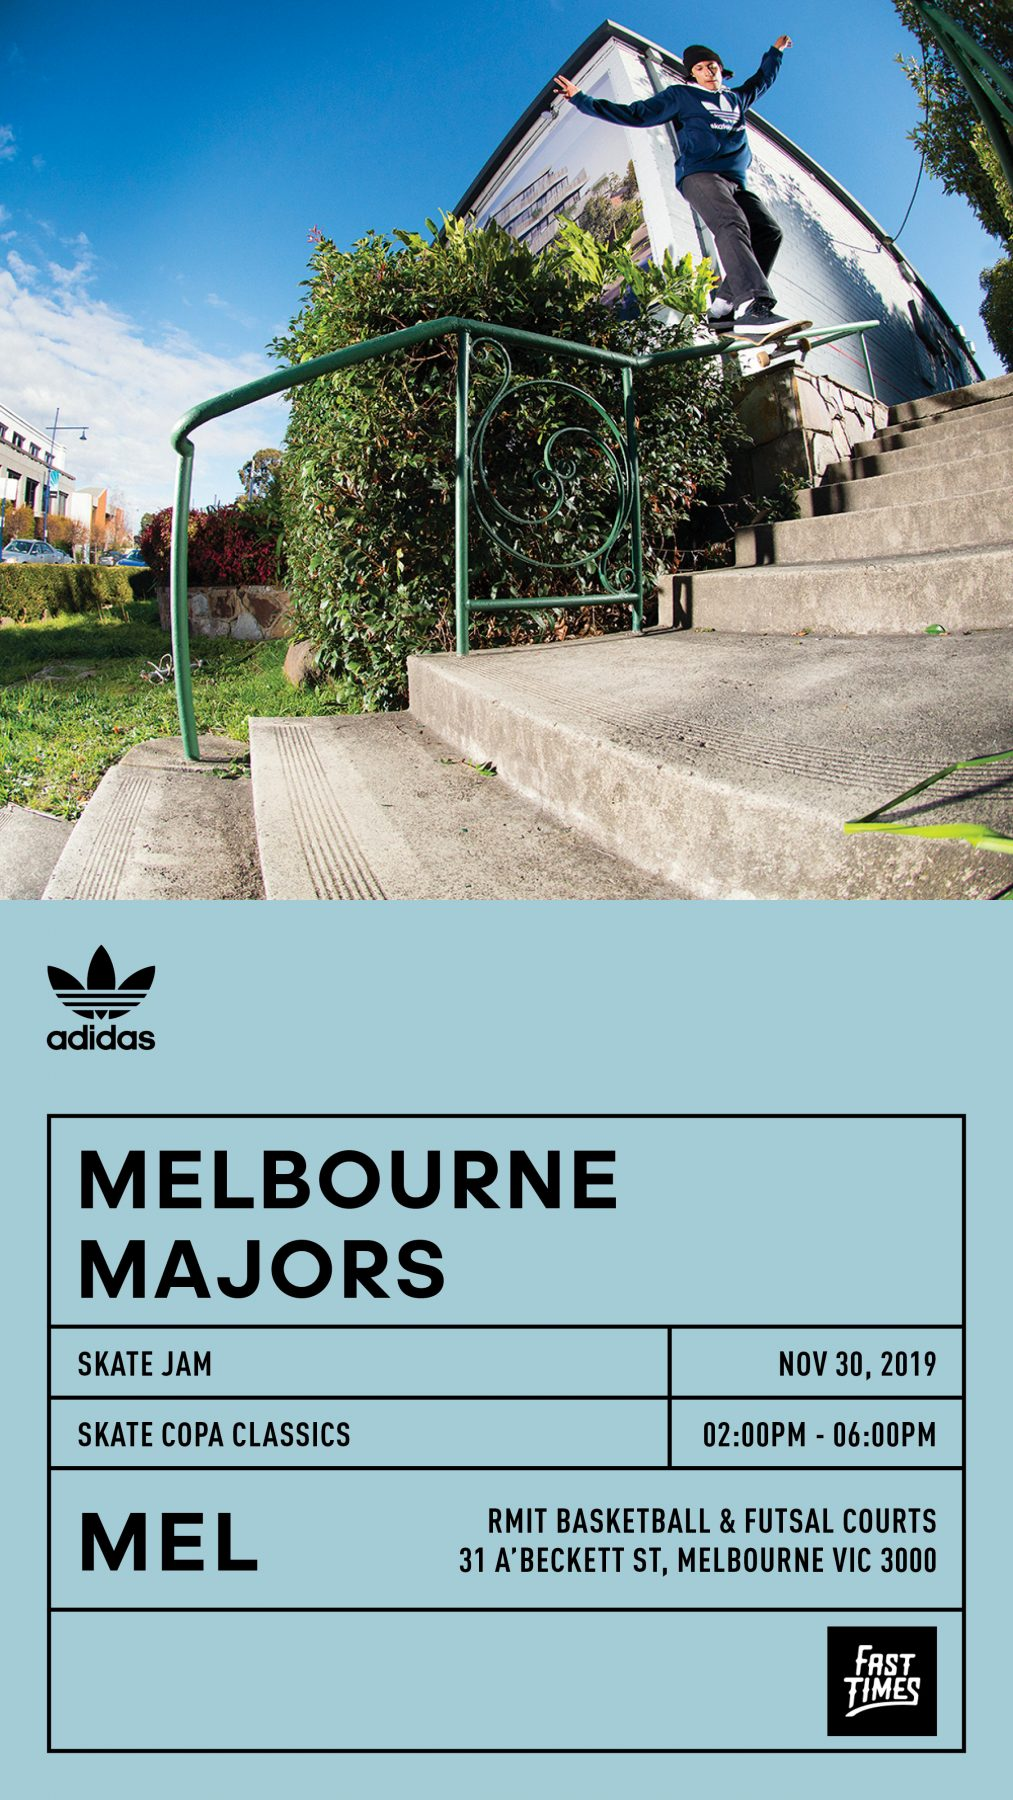 ADIDAS + FAST TIMES PRESENT: SKATE COPA CLASSICS MELBOURNE - Saturday 30th November, RMIT Basketball and Futsal Courts